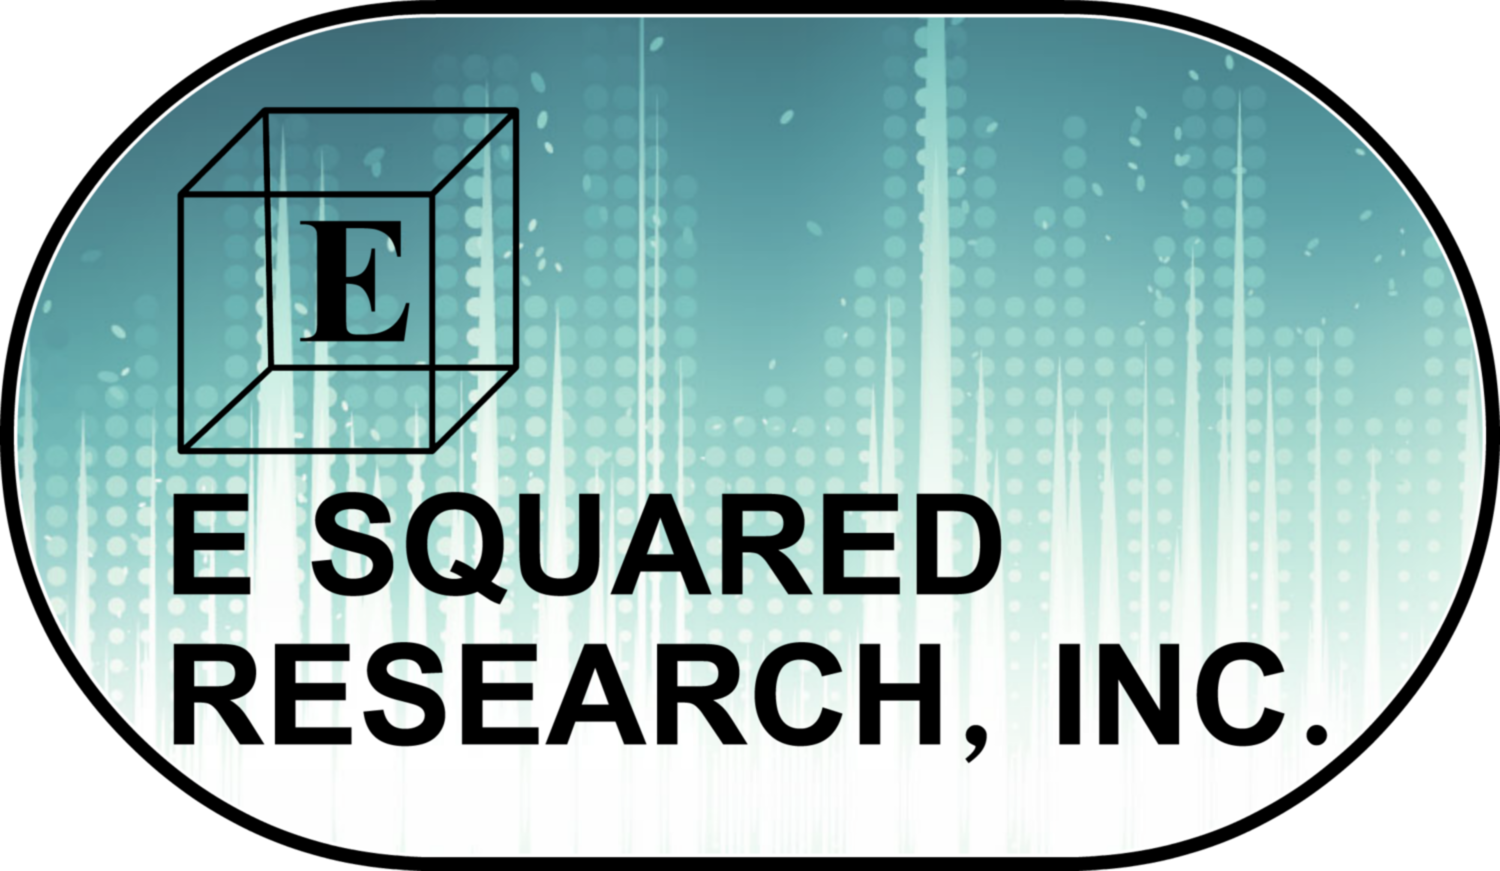 E Squared Research, Inc.